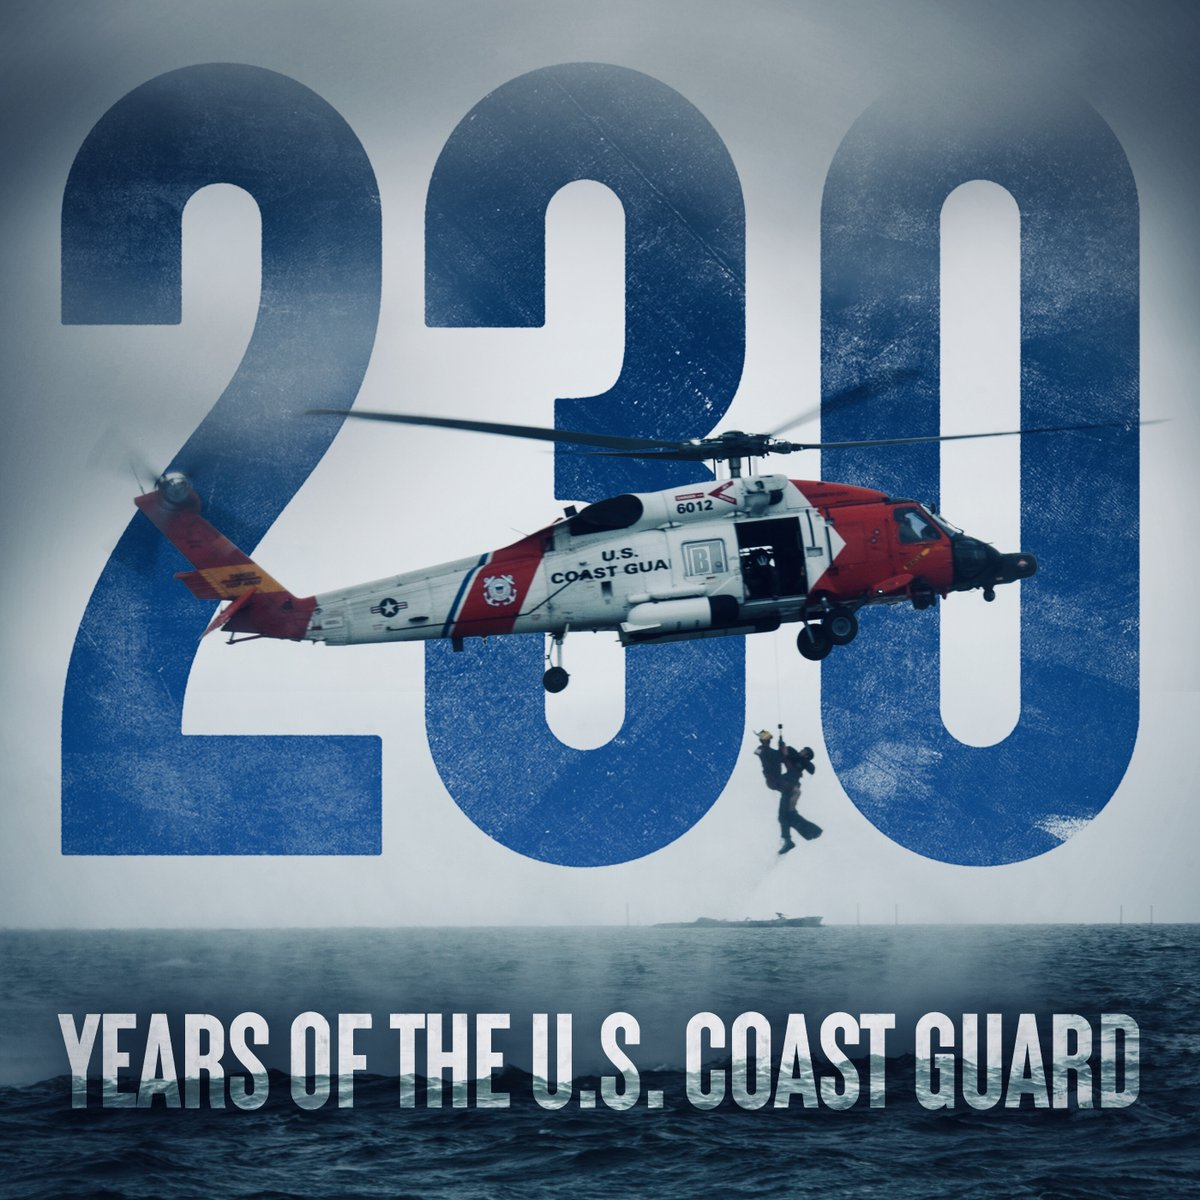 Today, we celebrate 230 years of those who protect America's economic prosperity, national security, and its borders. Happy Birthday, U.S. Coast Guard!